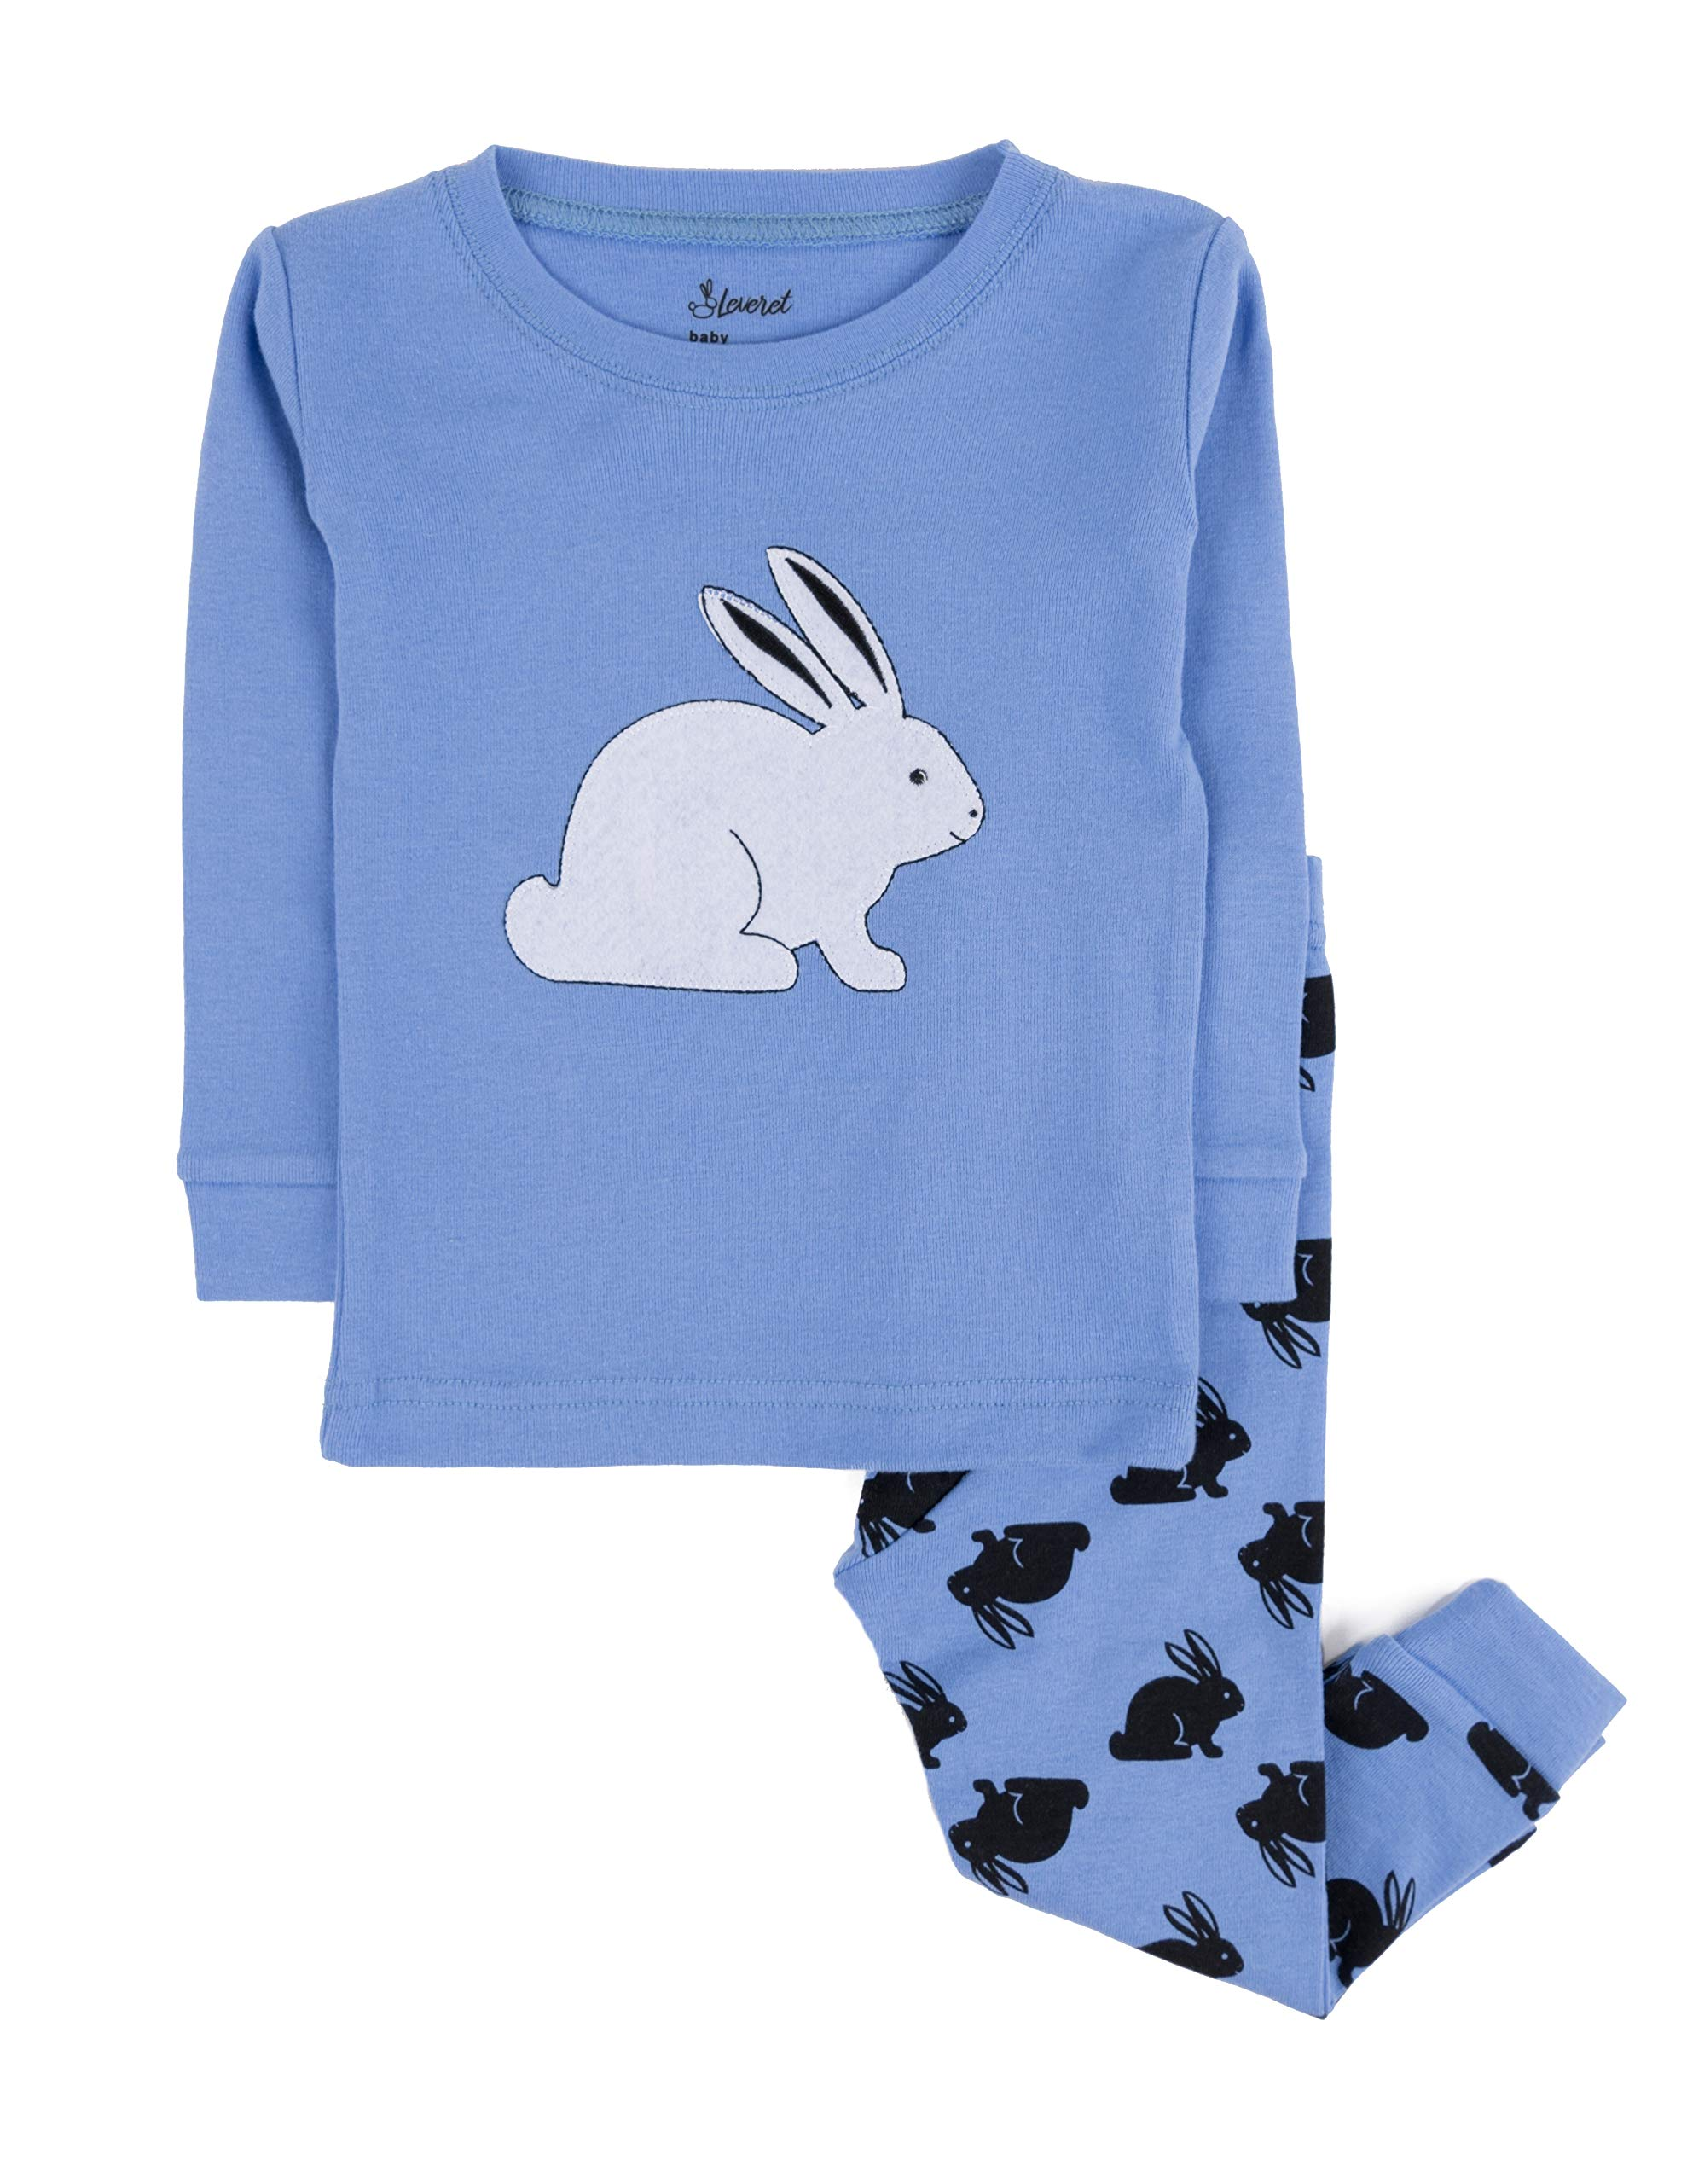 079d90260c35b Best Rated in Boys' Pajama Sets & Helpful Customer Reviews - Amazon.com